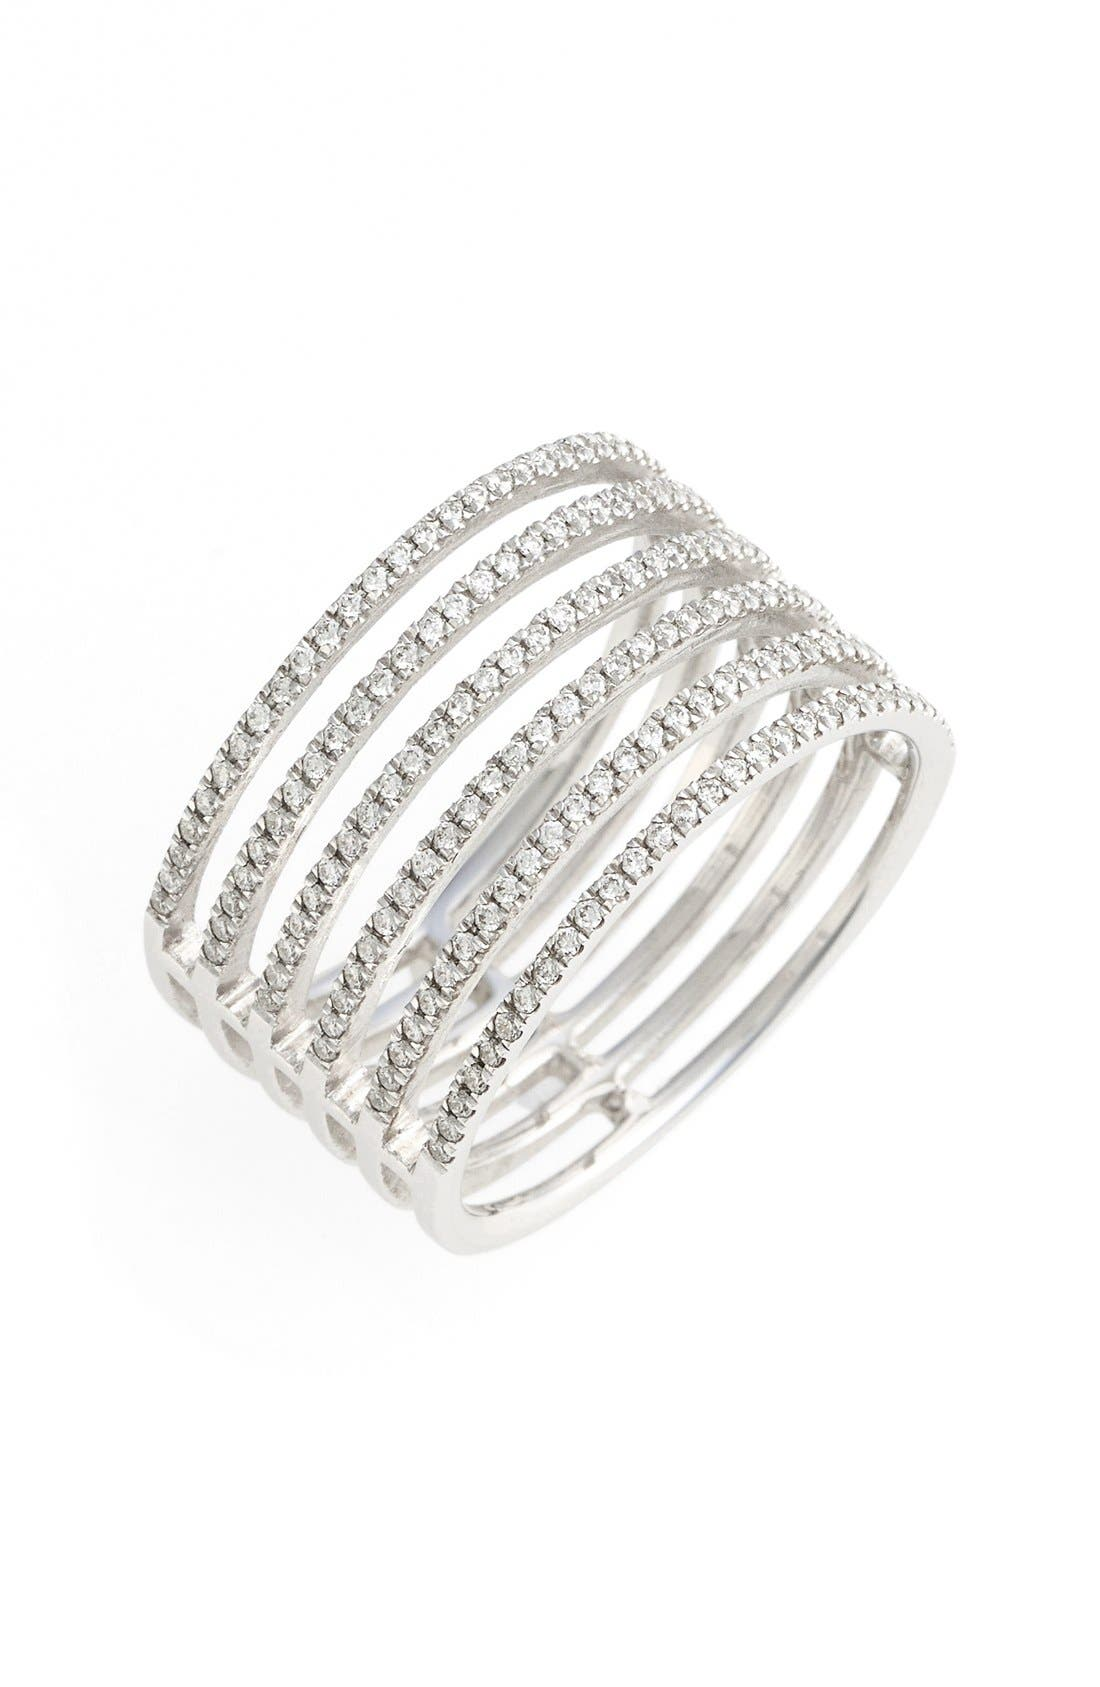 Alternate Image 1 Selected - Bony Levy 'Prism' Six-Row Diamond Ring (Nordstrom Exclusive)